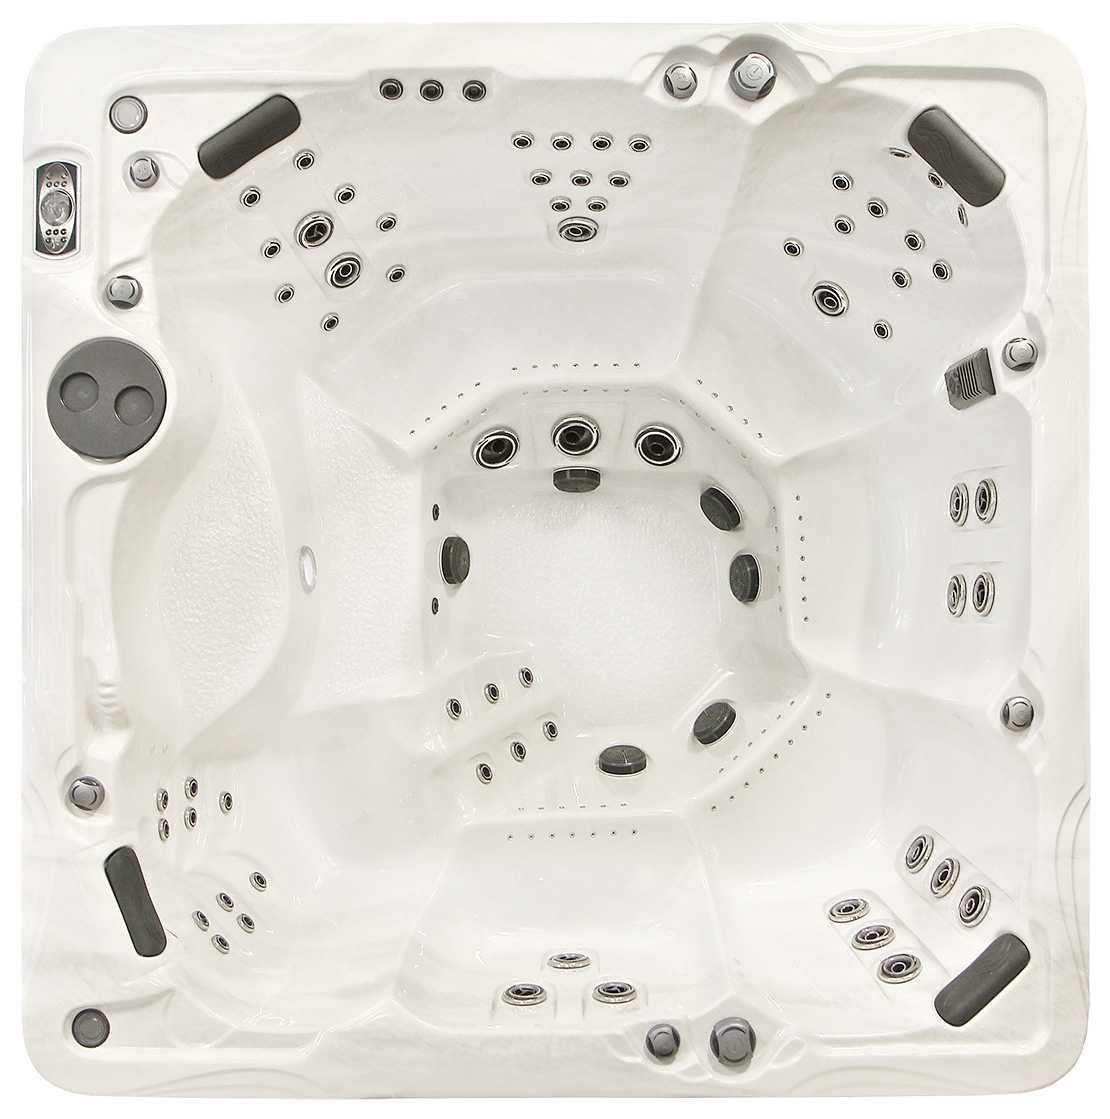 PDC Spa Luxury Series,Spas,Hot Tubs,Whirlpool Tubs,Jacuzzi,Spa Parts ...